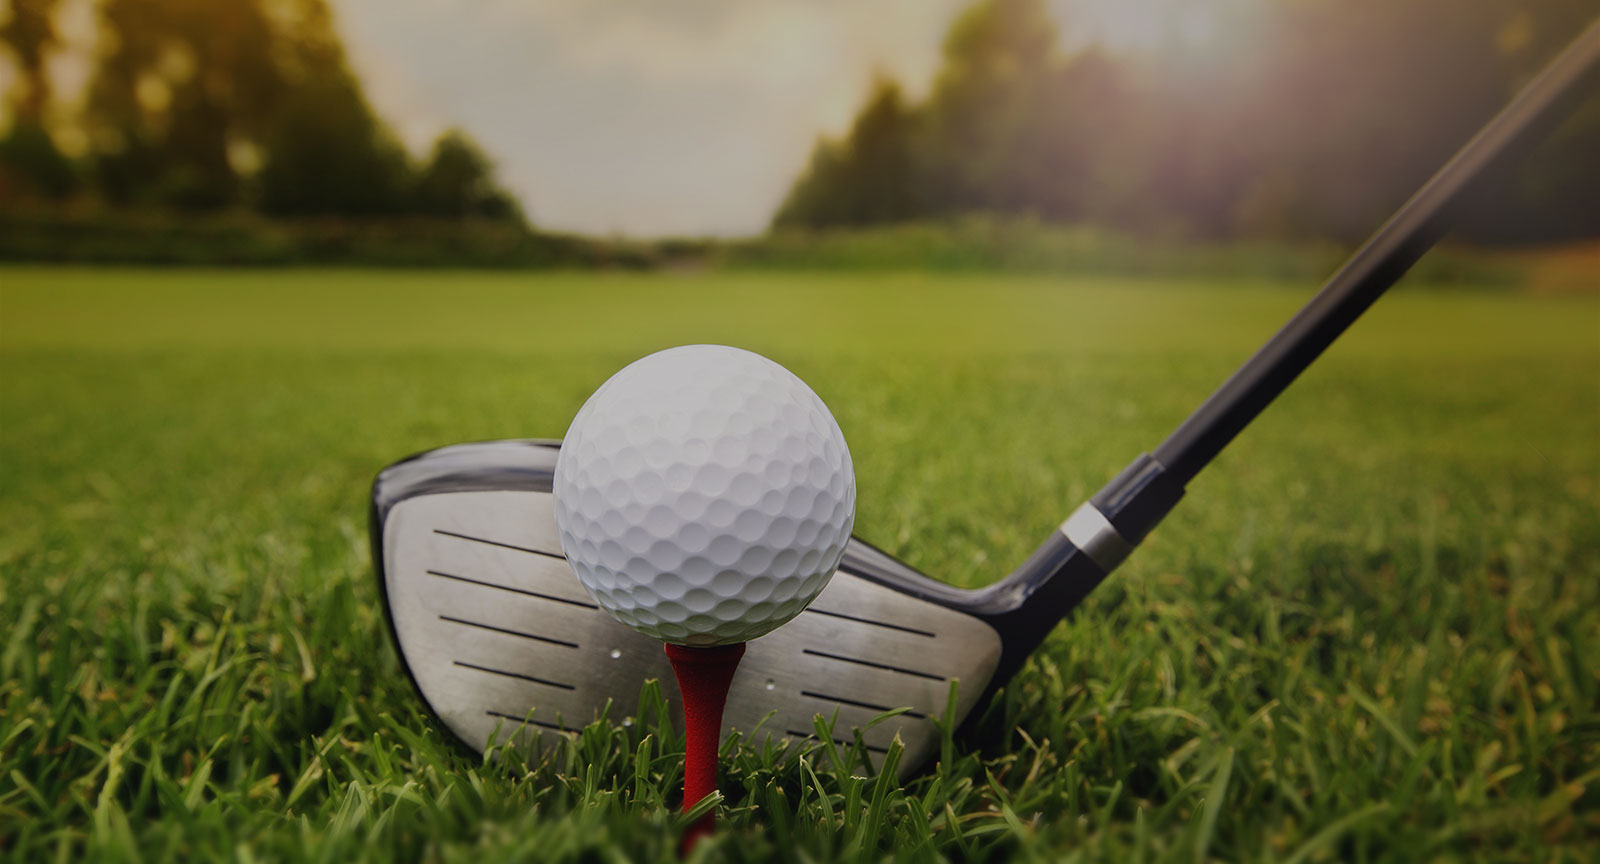 2021 LEORF Golf Classic – Planning with Practicing Social Distancing and Enhanced Safety Plan